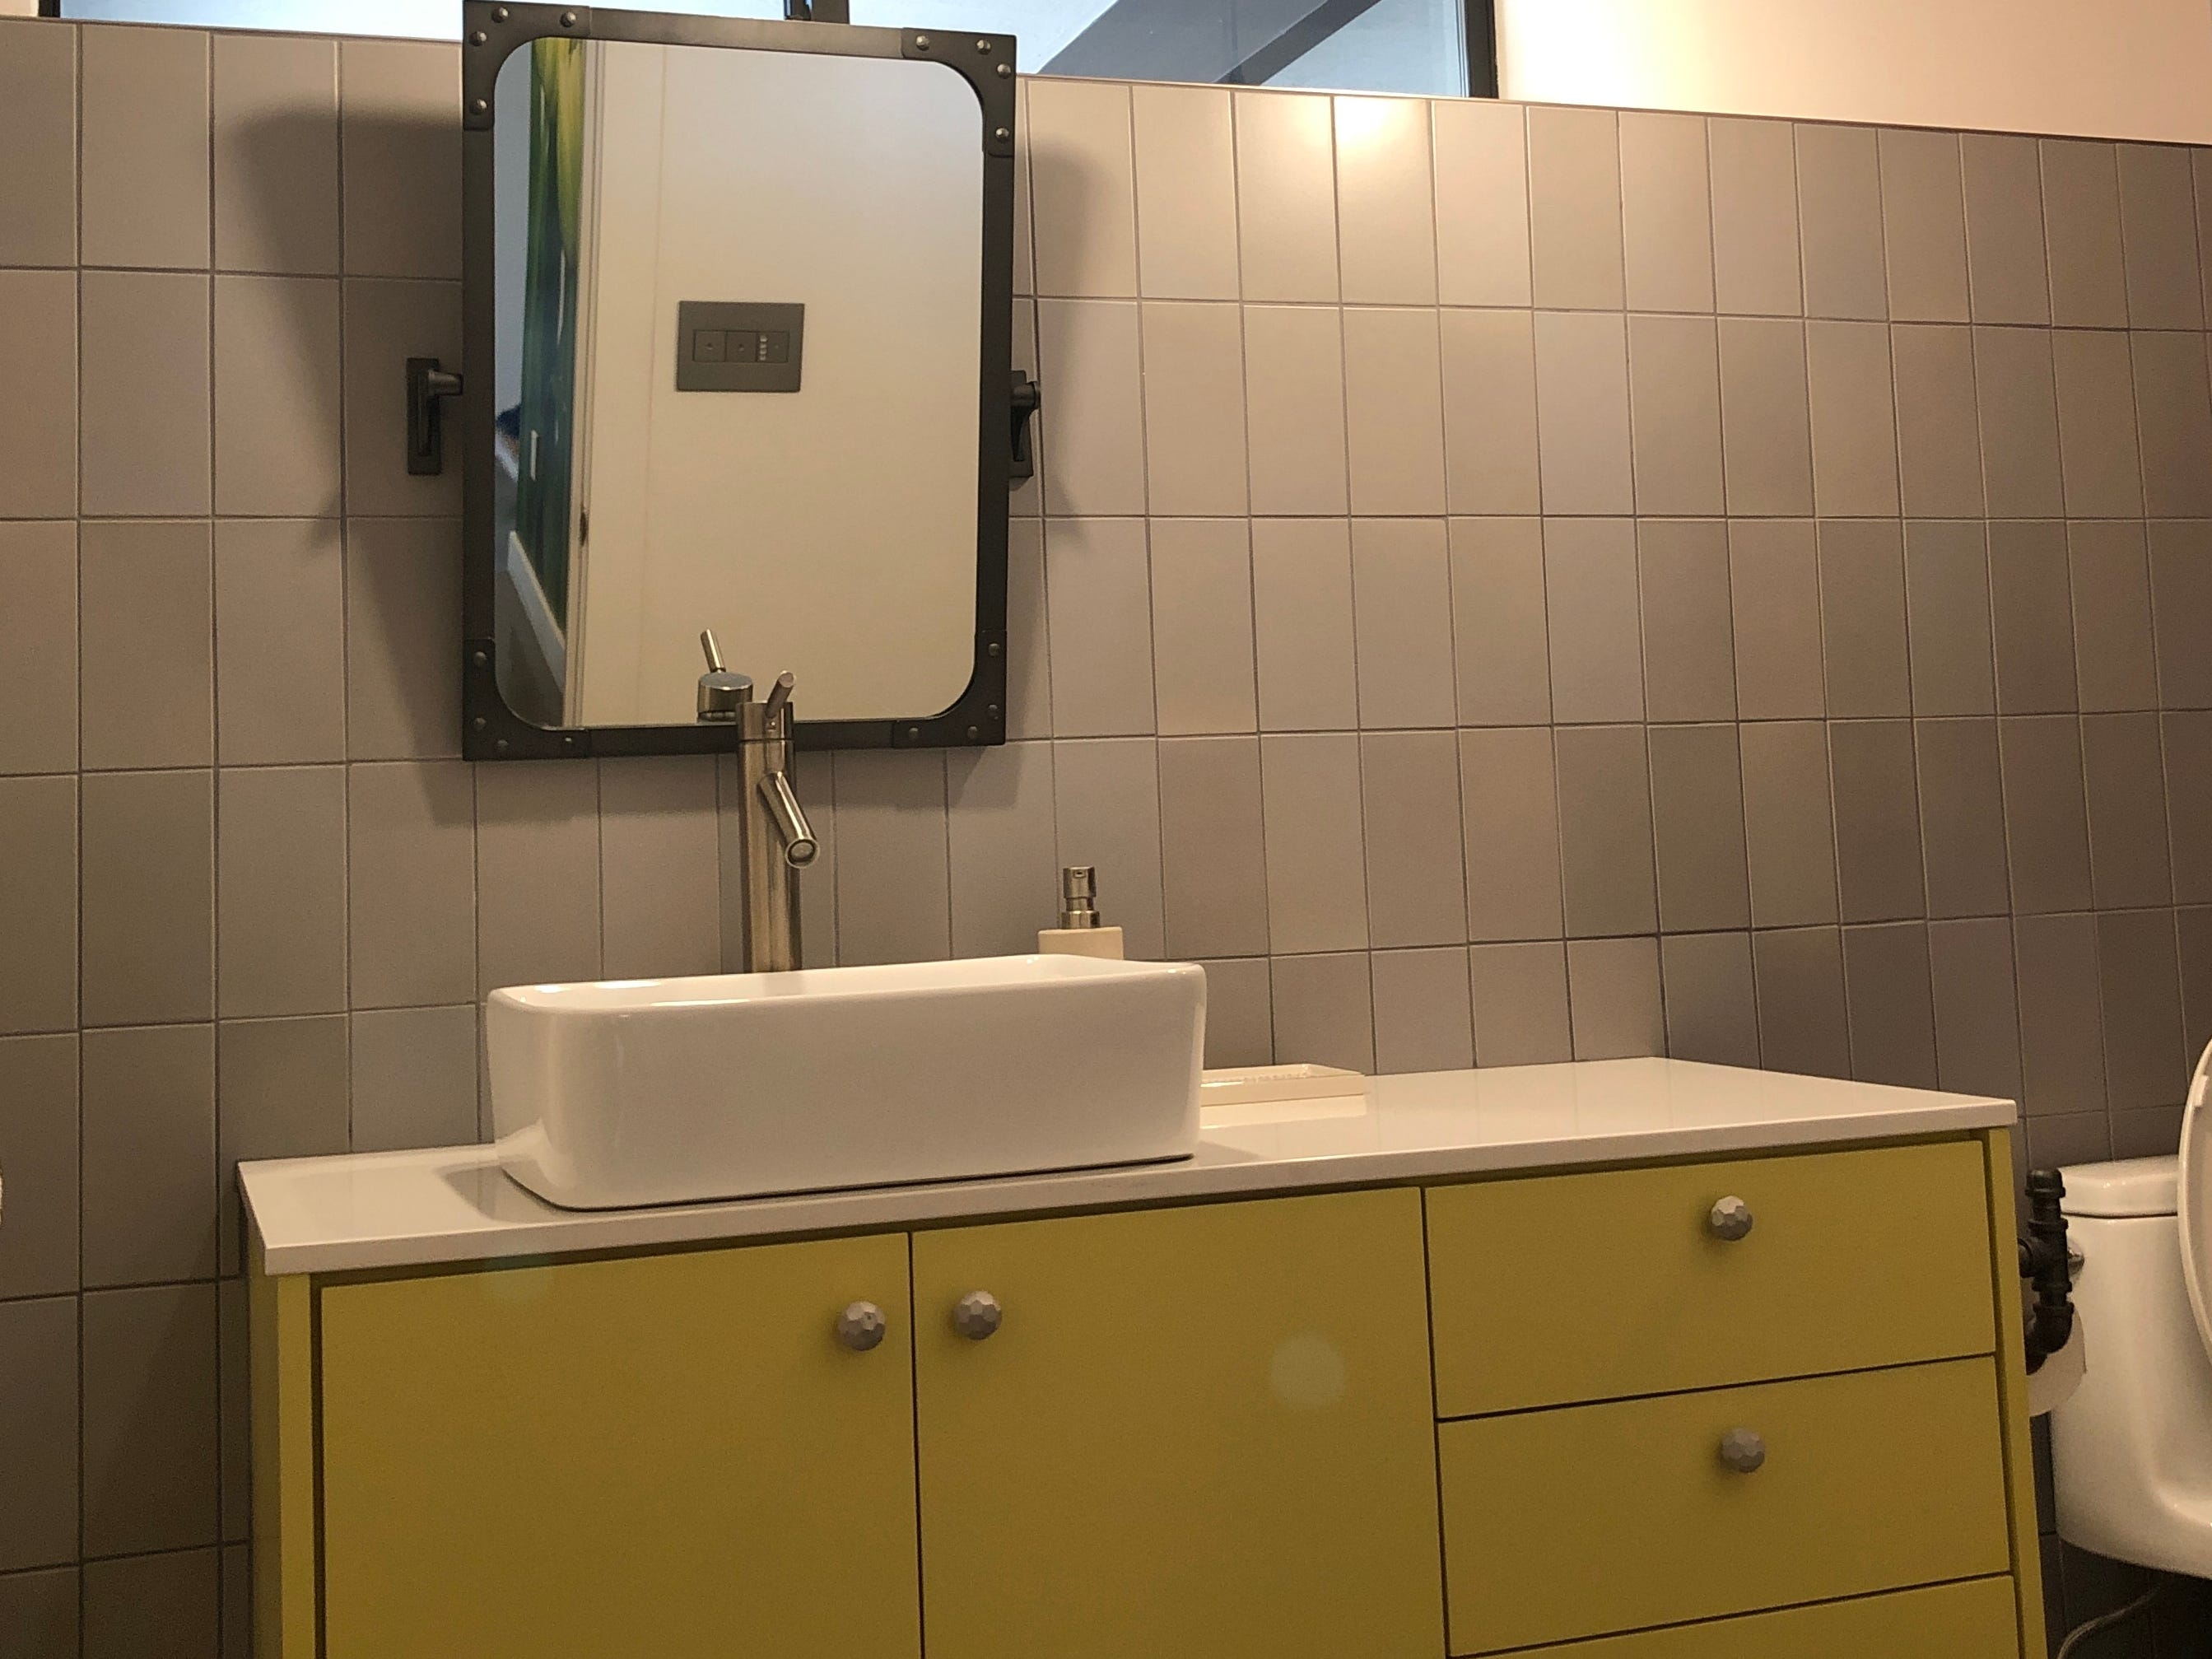 Both bathrooms were completely remodeled, including the guest bath, which Vierra's son uses. Vierra installed this sink with yellow cabinets and quartz countertops.